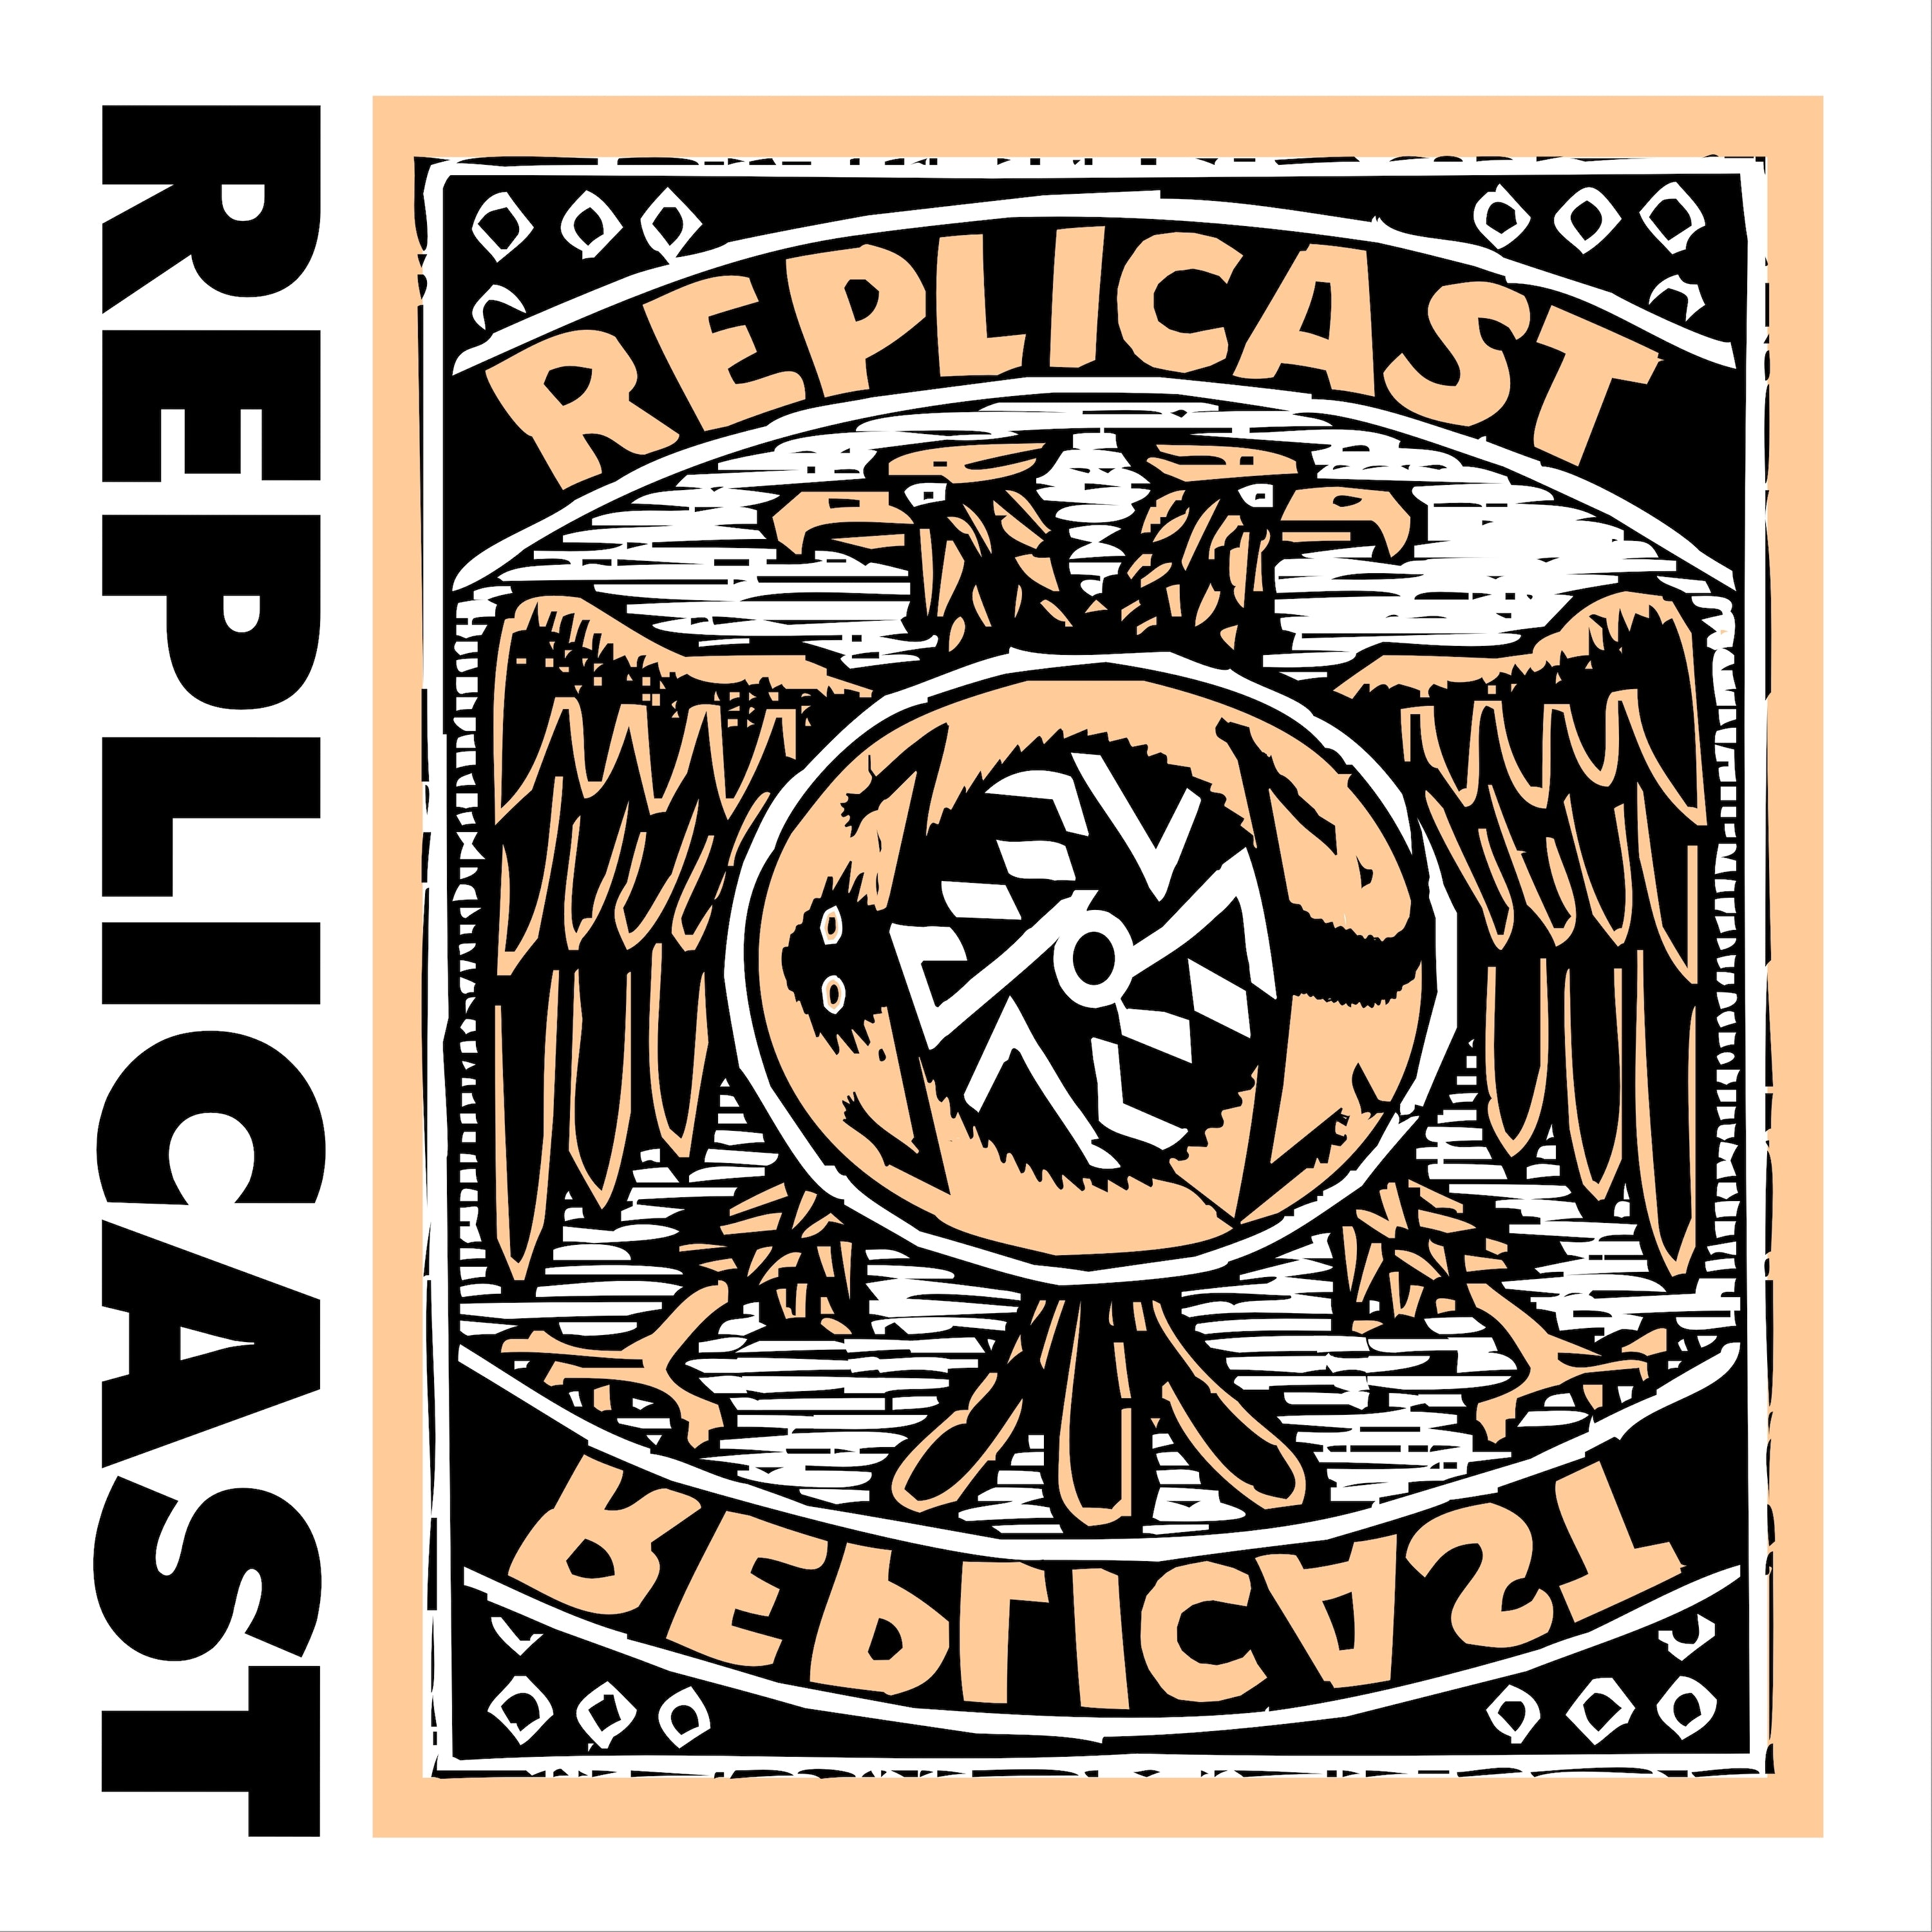 Replicast - Obliq Recordings